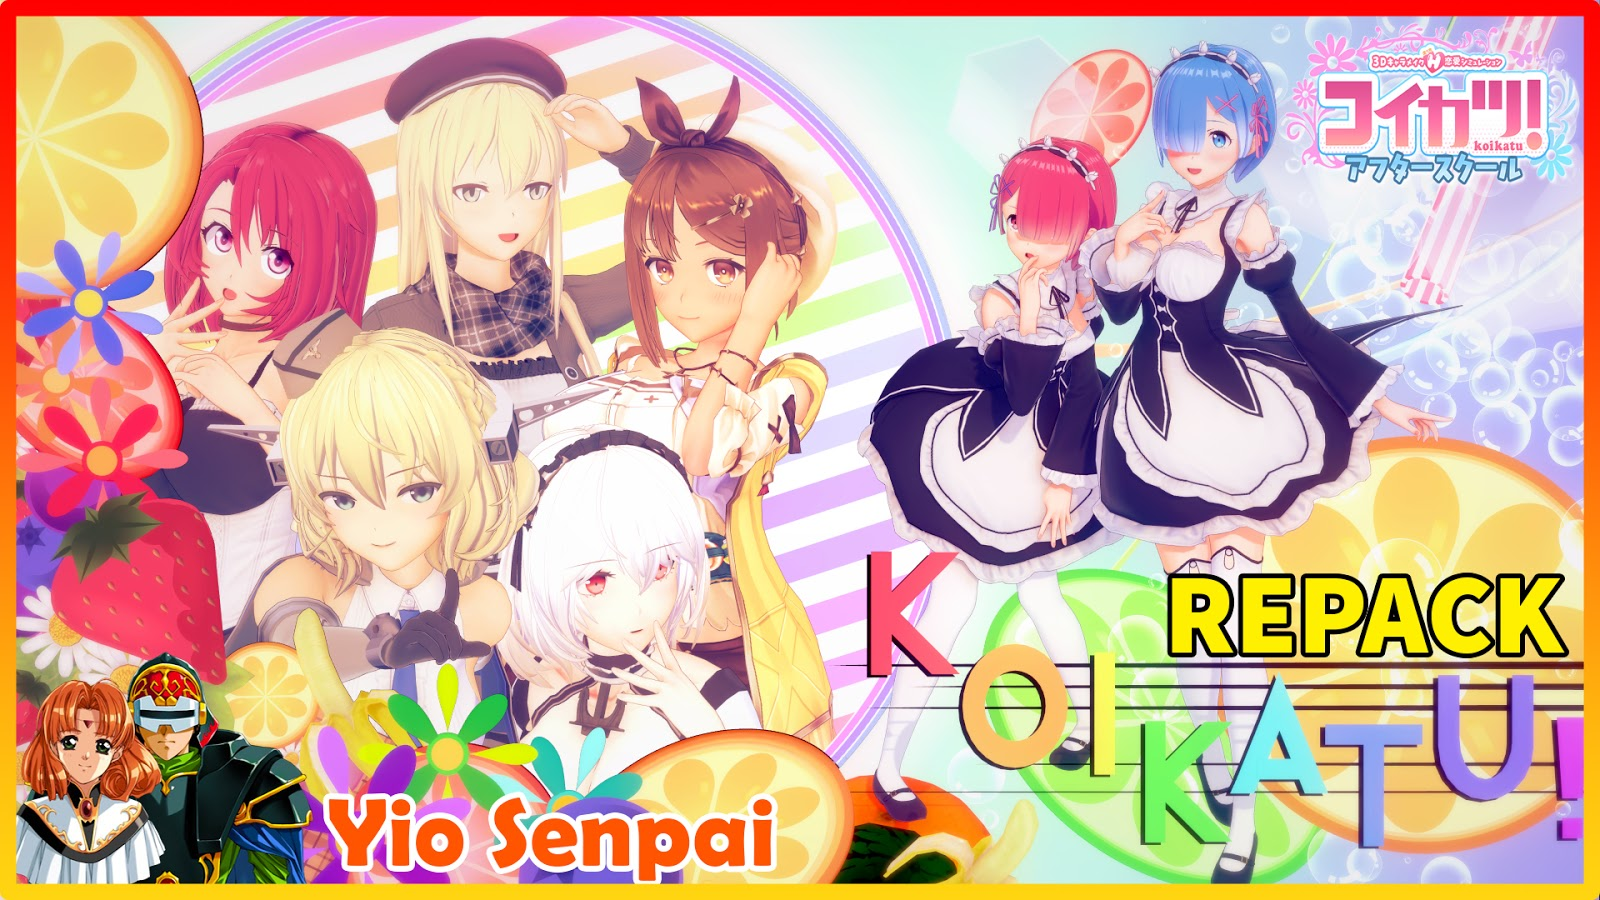 [REPACK] Koikatu / Koikatsu Ver 5.1 v4.0 AD-Hentai + Google Translate + All DLC's+MOD's Uncensored